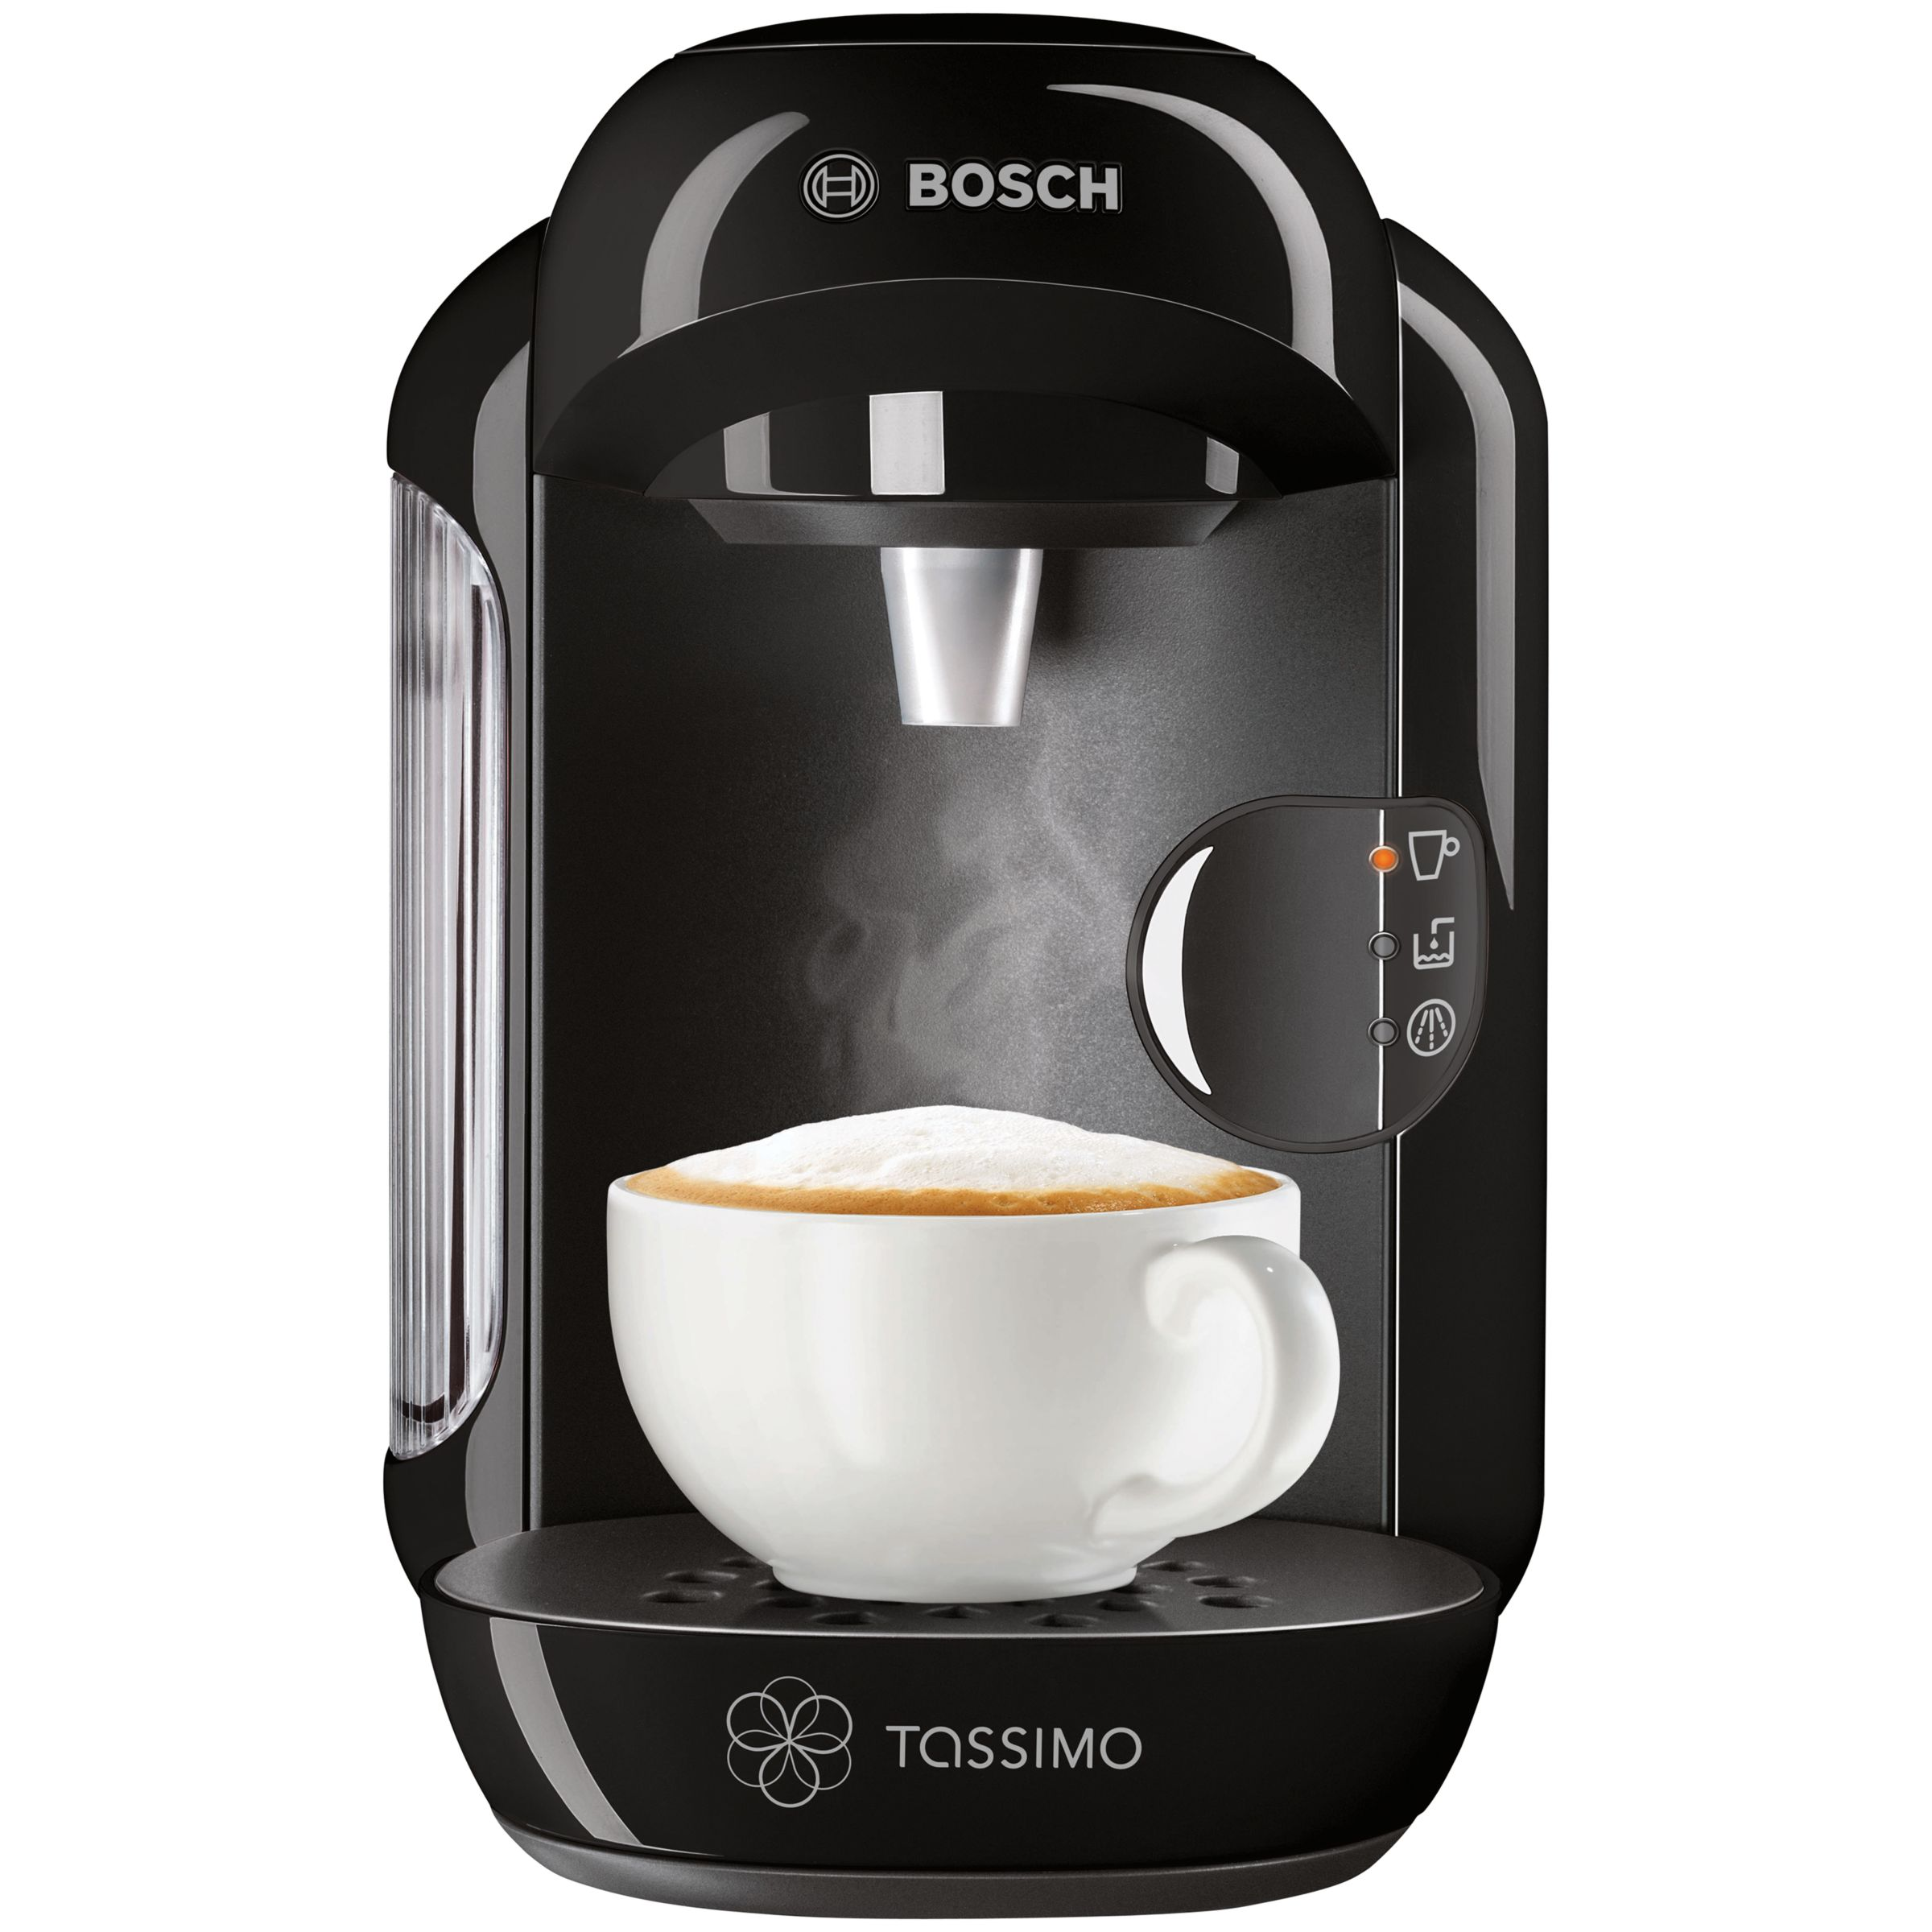 John Lewis Bosch Tassimo Coffee Maker : Buy Tassimo Vivy Coffee Machine by Bosch, Black John Lewis